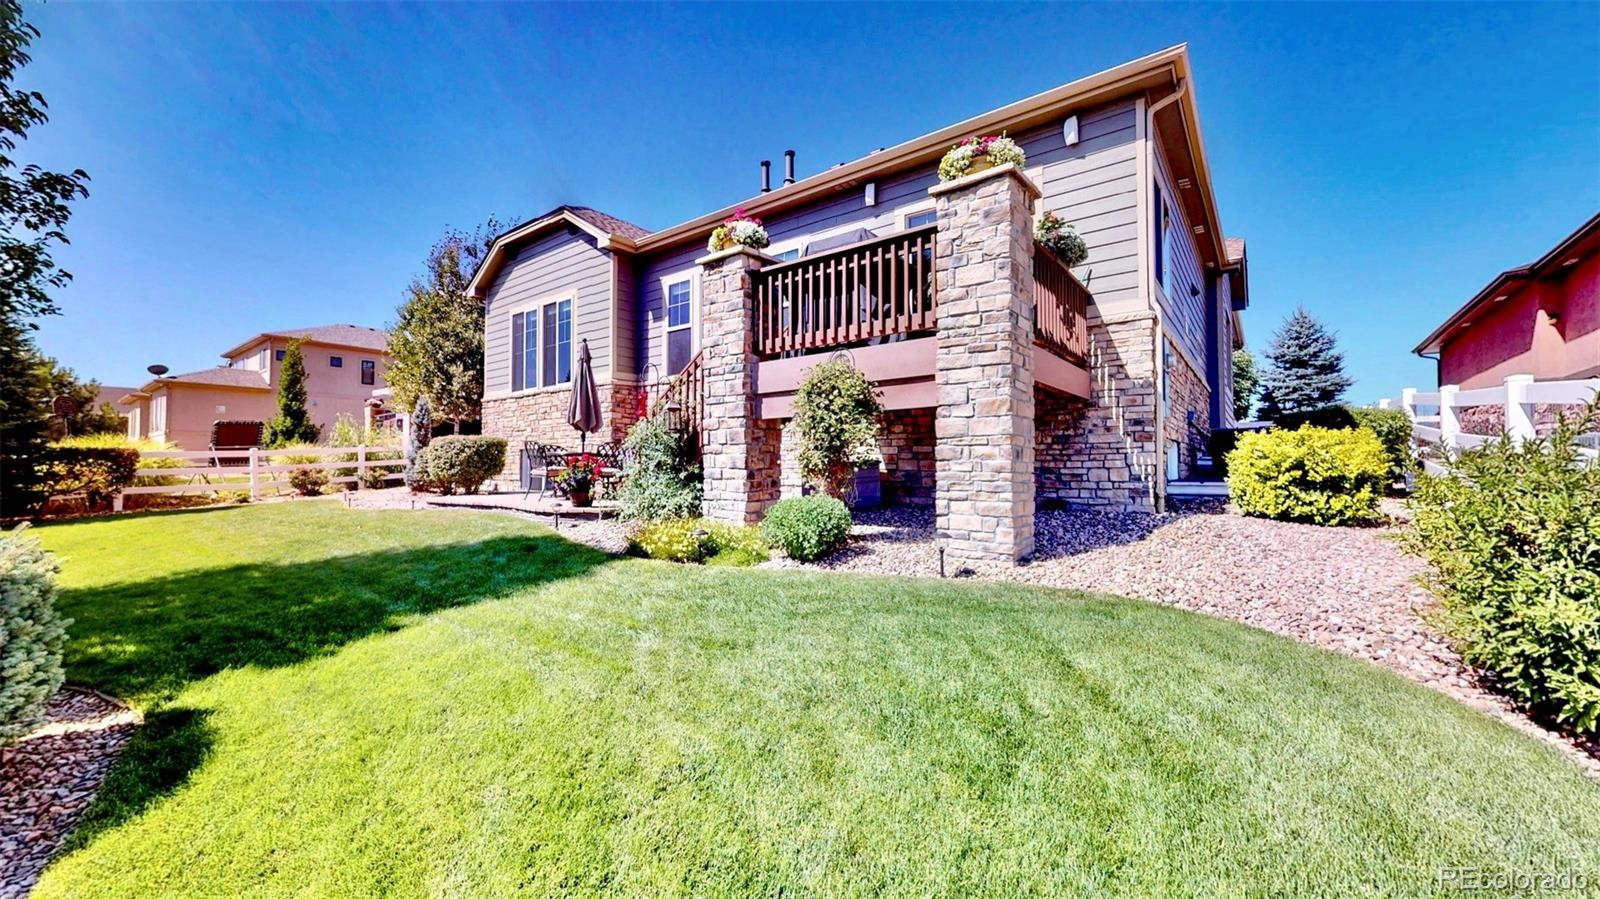 MLS# 4842638 - 27 - 8178 Vivian Street, Arvada, CO 80005